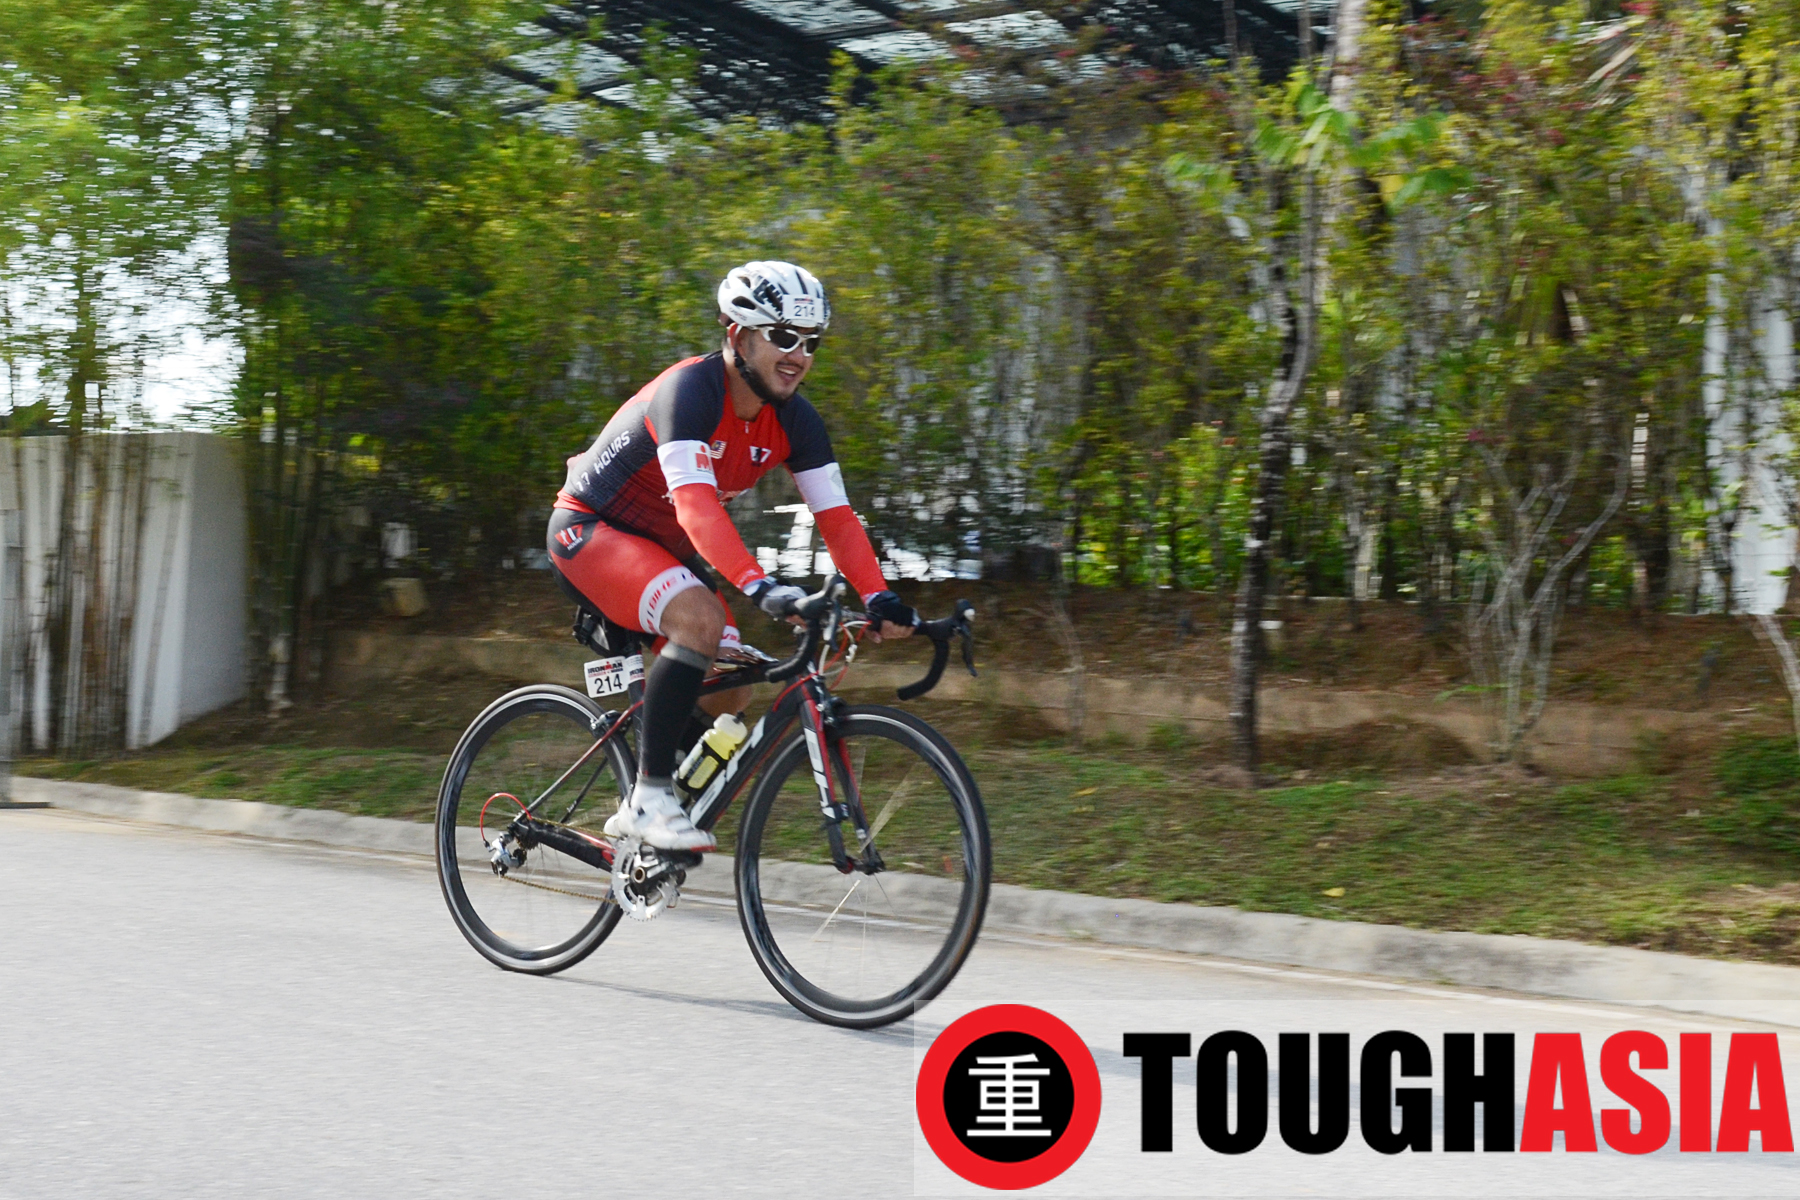 Richard Lee cycling out of Transition 1 and onto the 180km bike route around Langkawi.